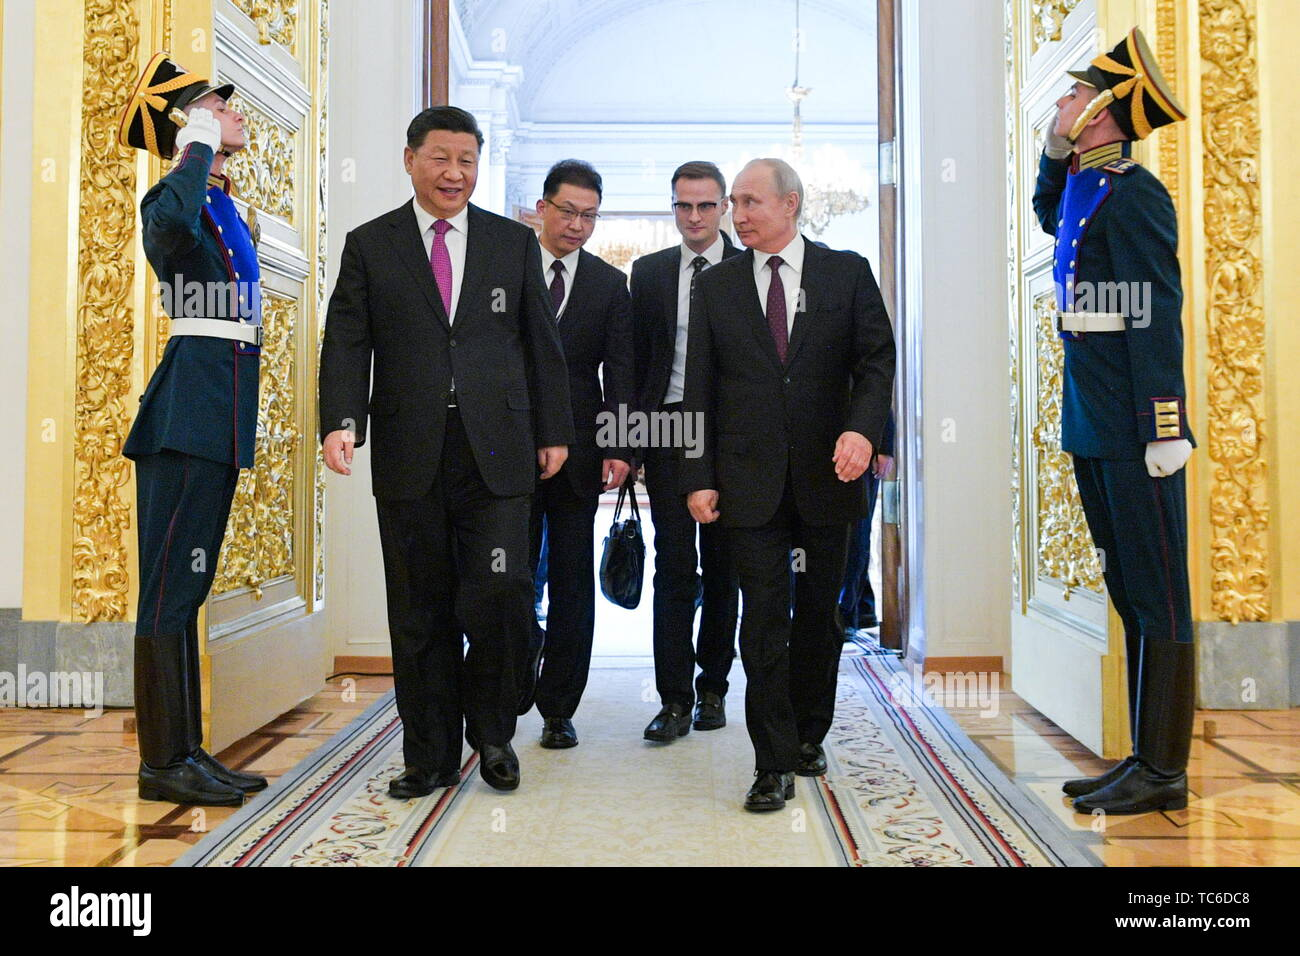 Moscow, Russia. 05th June, 2019. MOSCOW, RUSSIA - JUNE 5, 2019: China's President Xi Jinping and Russia's President Vladimir Putin (L-R front) at a ceremony to sign joint documents following Russian-Chinese talks at the Moscow Kremlin. Alexei Druzhinin/Russian Presidential Press and Information Office/TASS Credit: ITAR-TASS News Agency/Alamy Live News - Stock Image